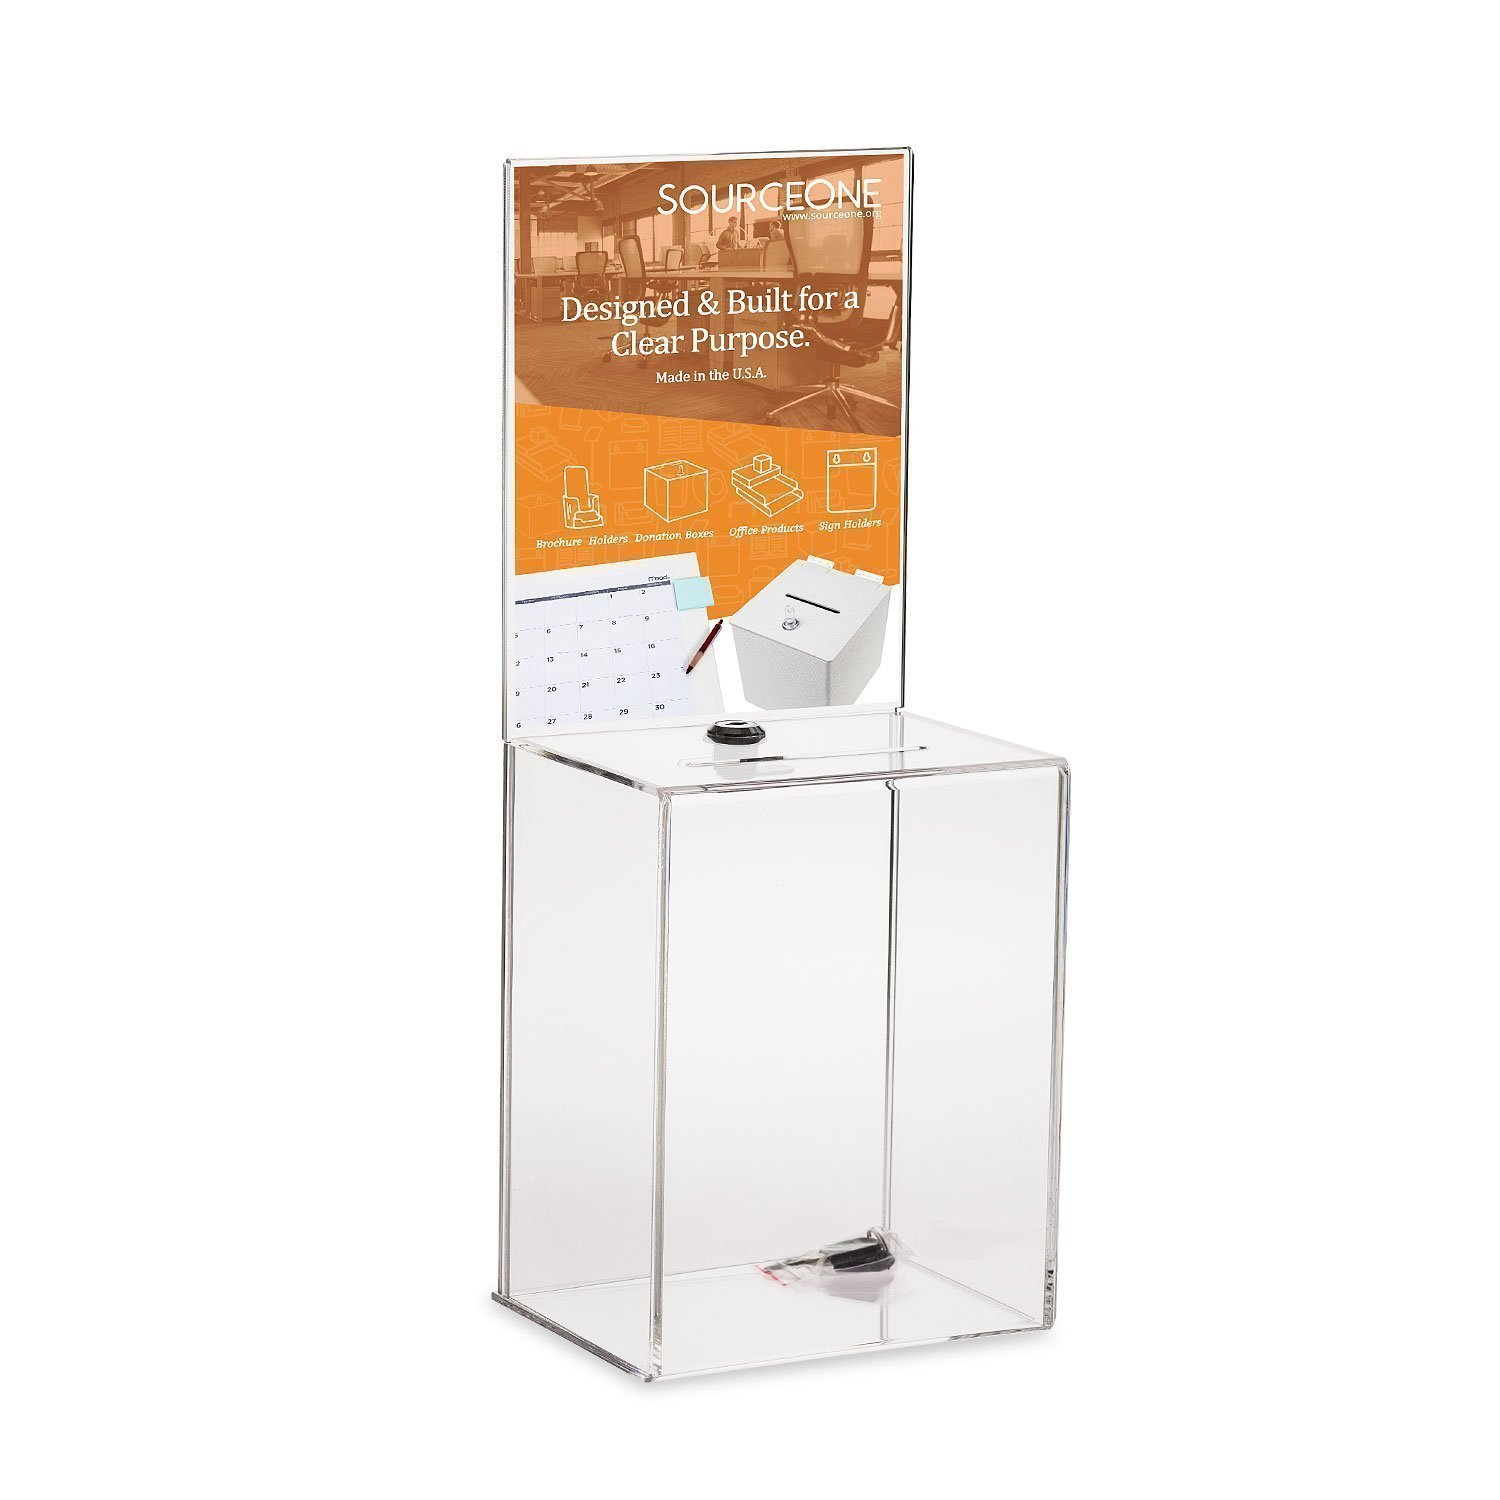 Source One Premium Tall Donation Box for Charity with 6.75″ x 8.5″ Sign Holder Available in Multiple Colors (8 Pack, Clear) by SOURCEONE.ORG (Image #1)